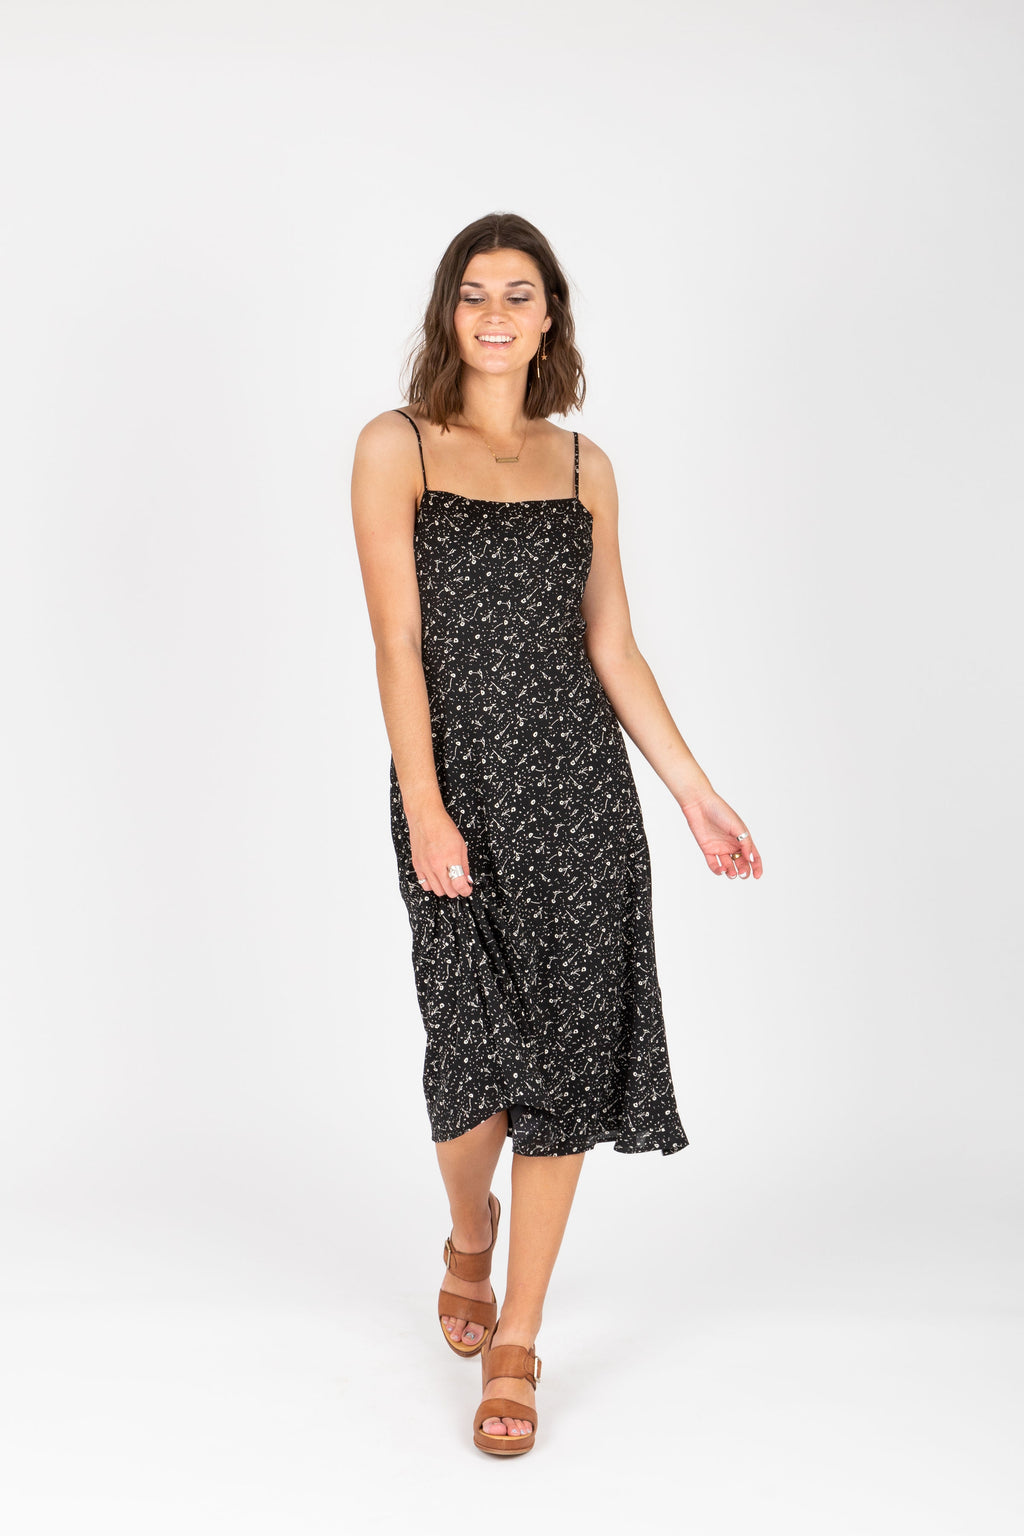 The Millie Patterned Tank Dress in Black, studio shoot; front view